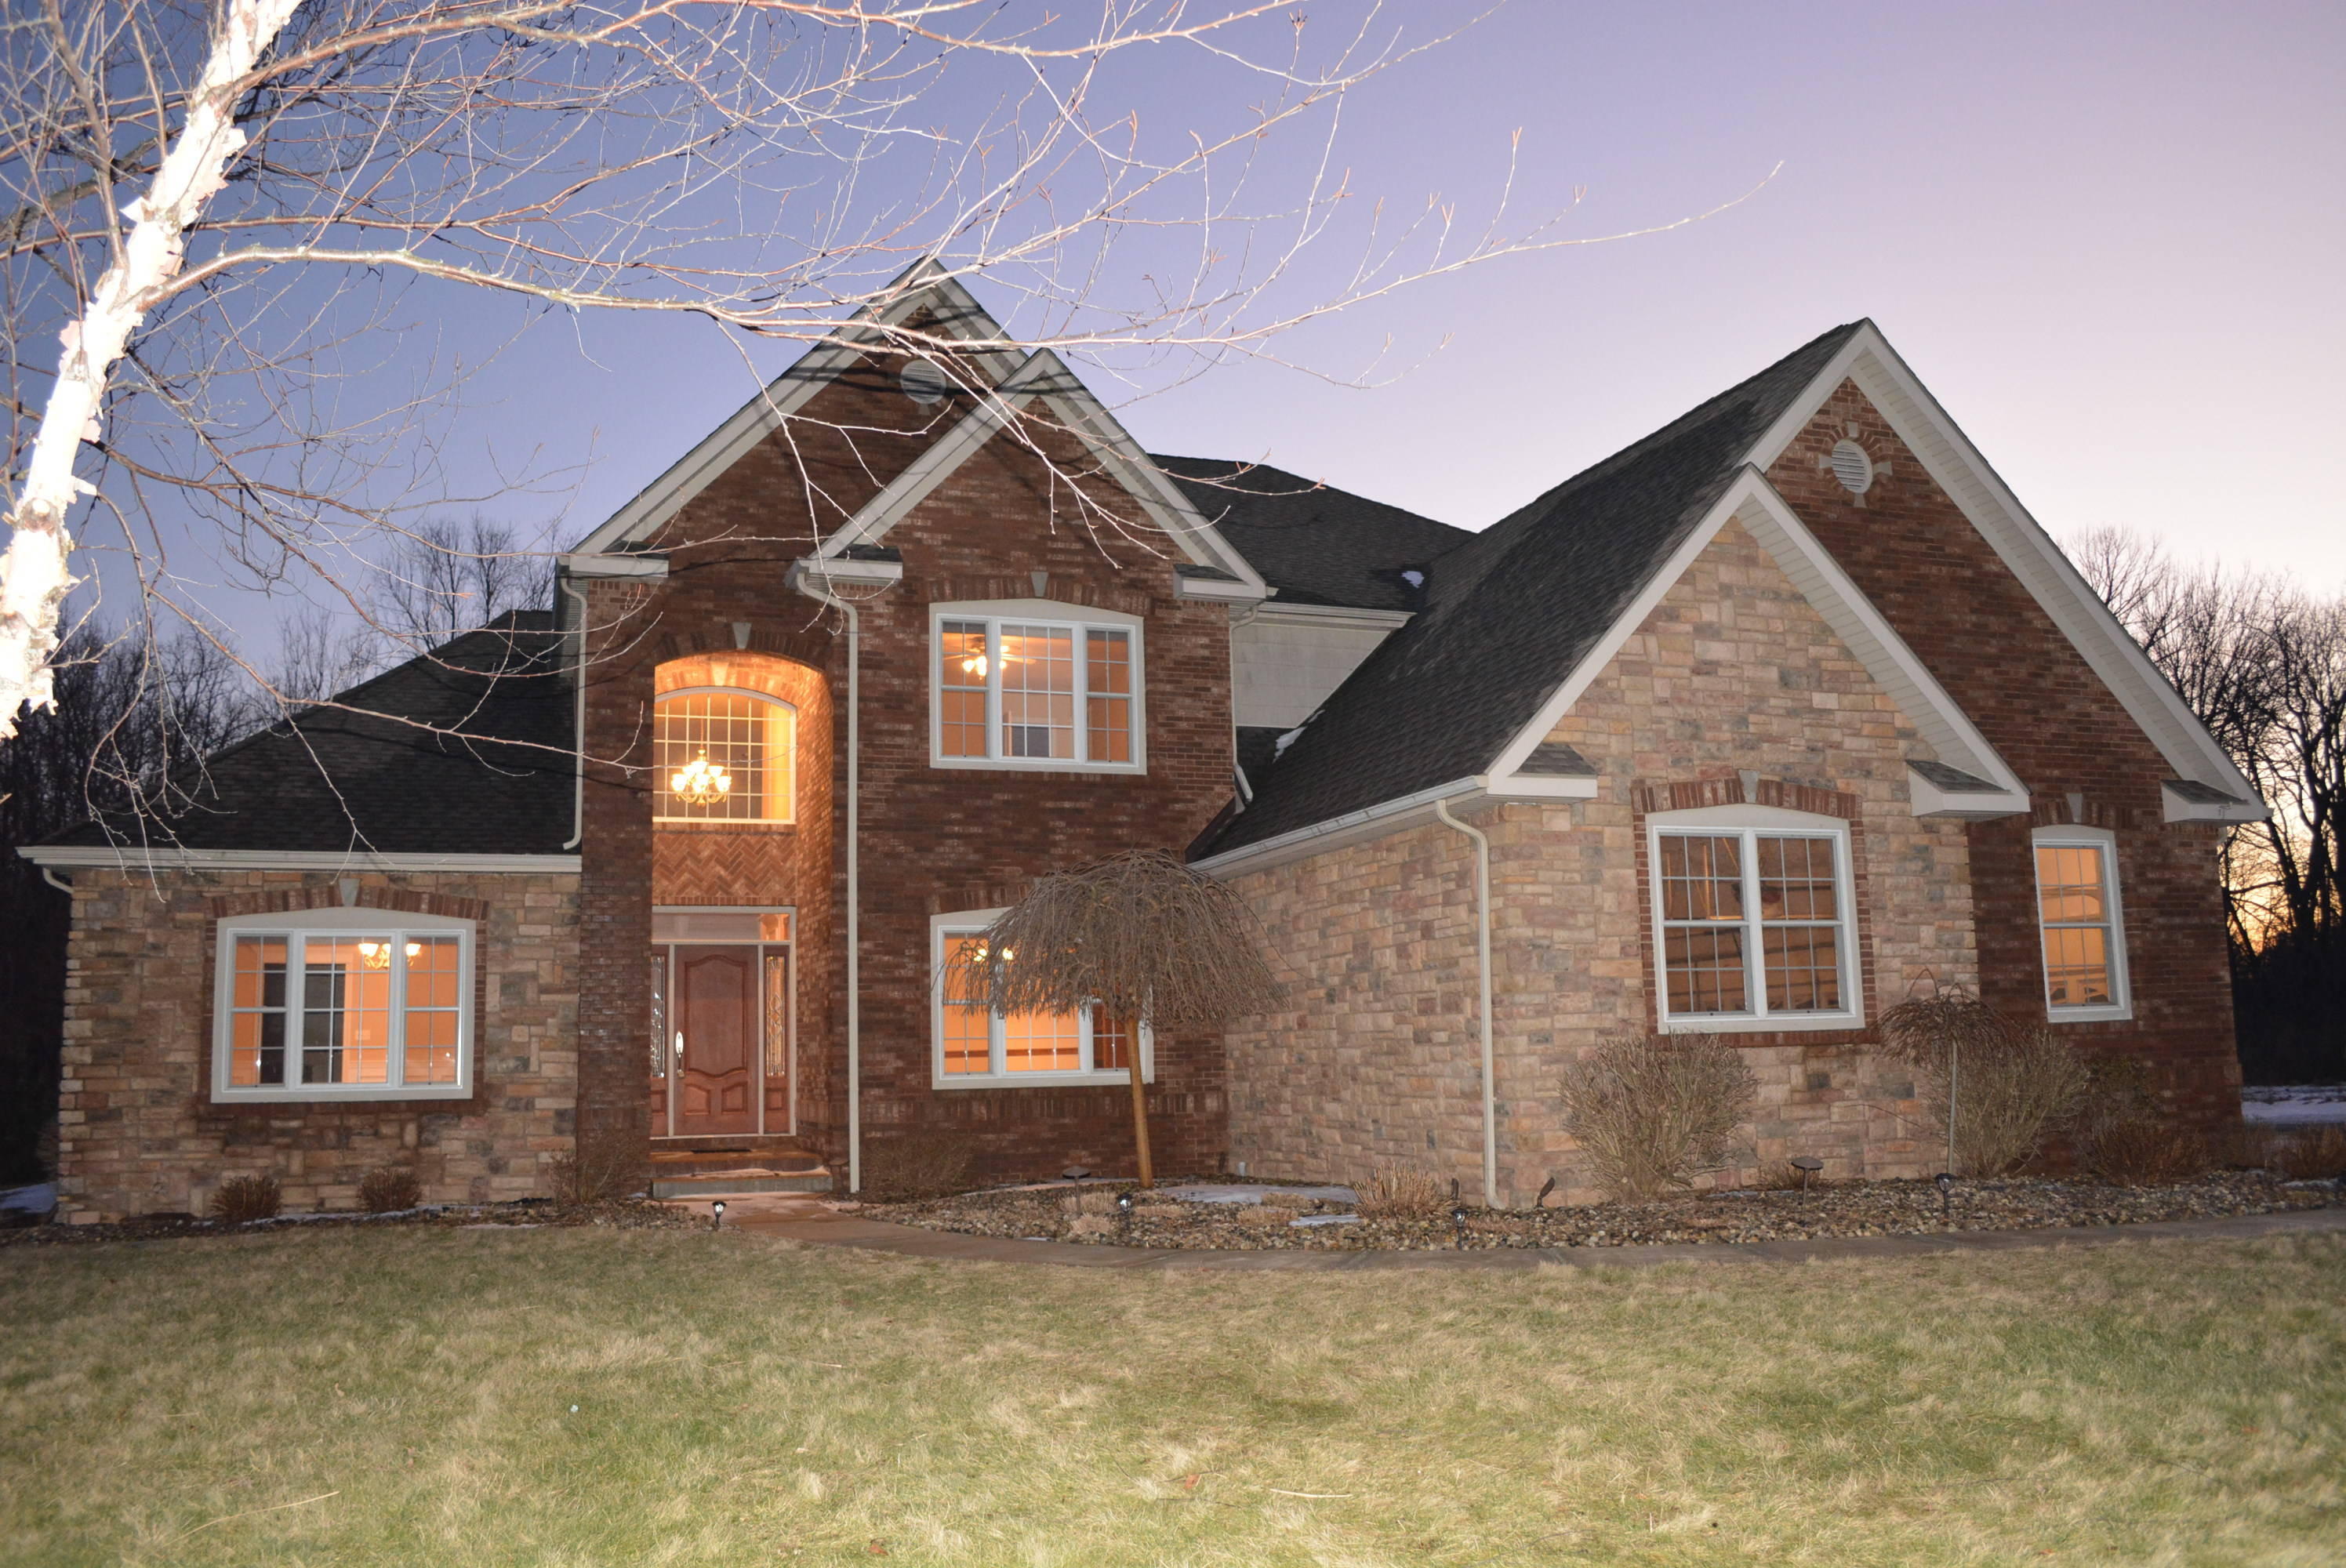 West lafayette kingswood 5 bedroom home for sale minute for 3 bedroom house with basement for sale